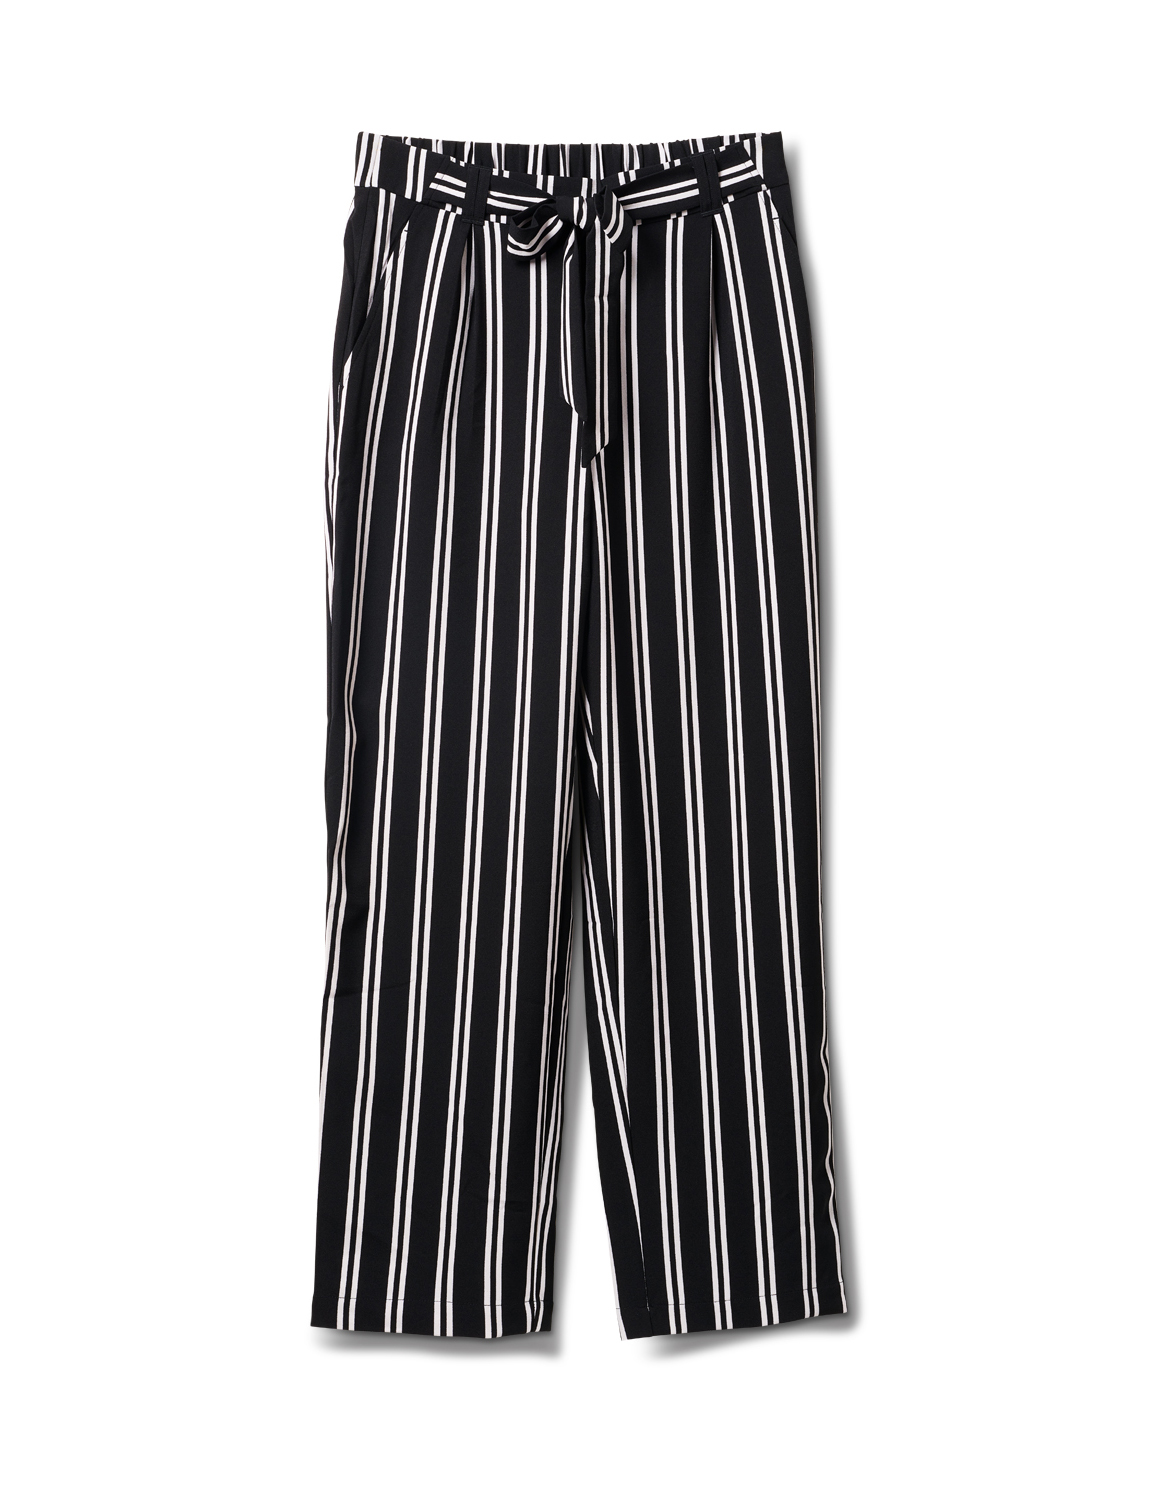 Striped Soft Pant with Elastic Waist, Soft Tie Belt -Black/white - Front